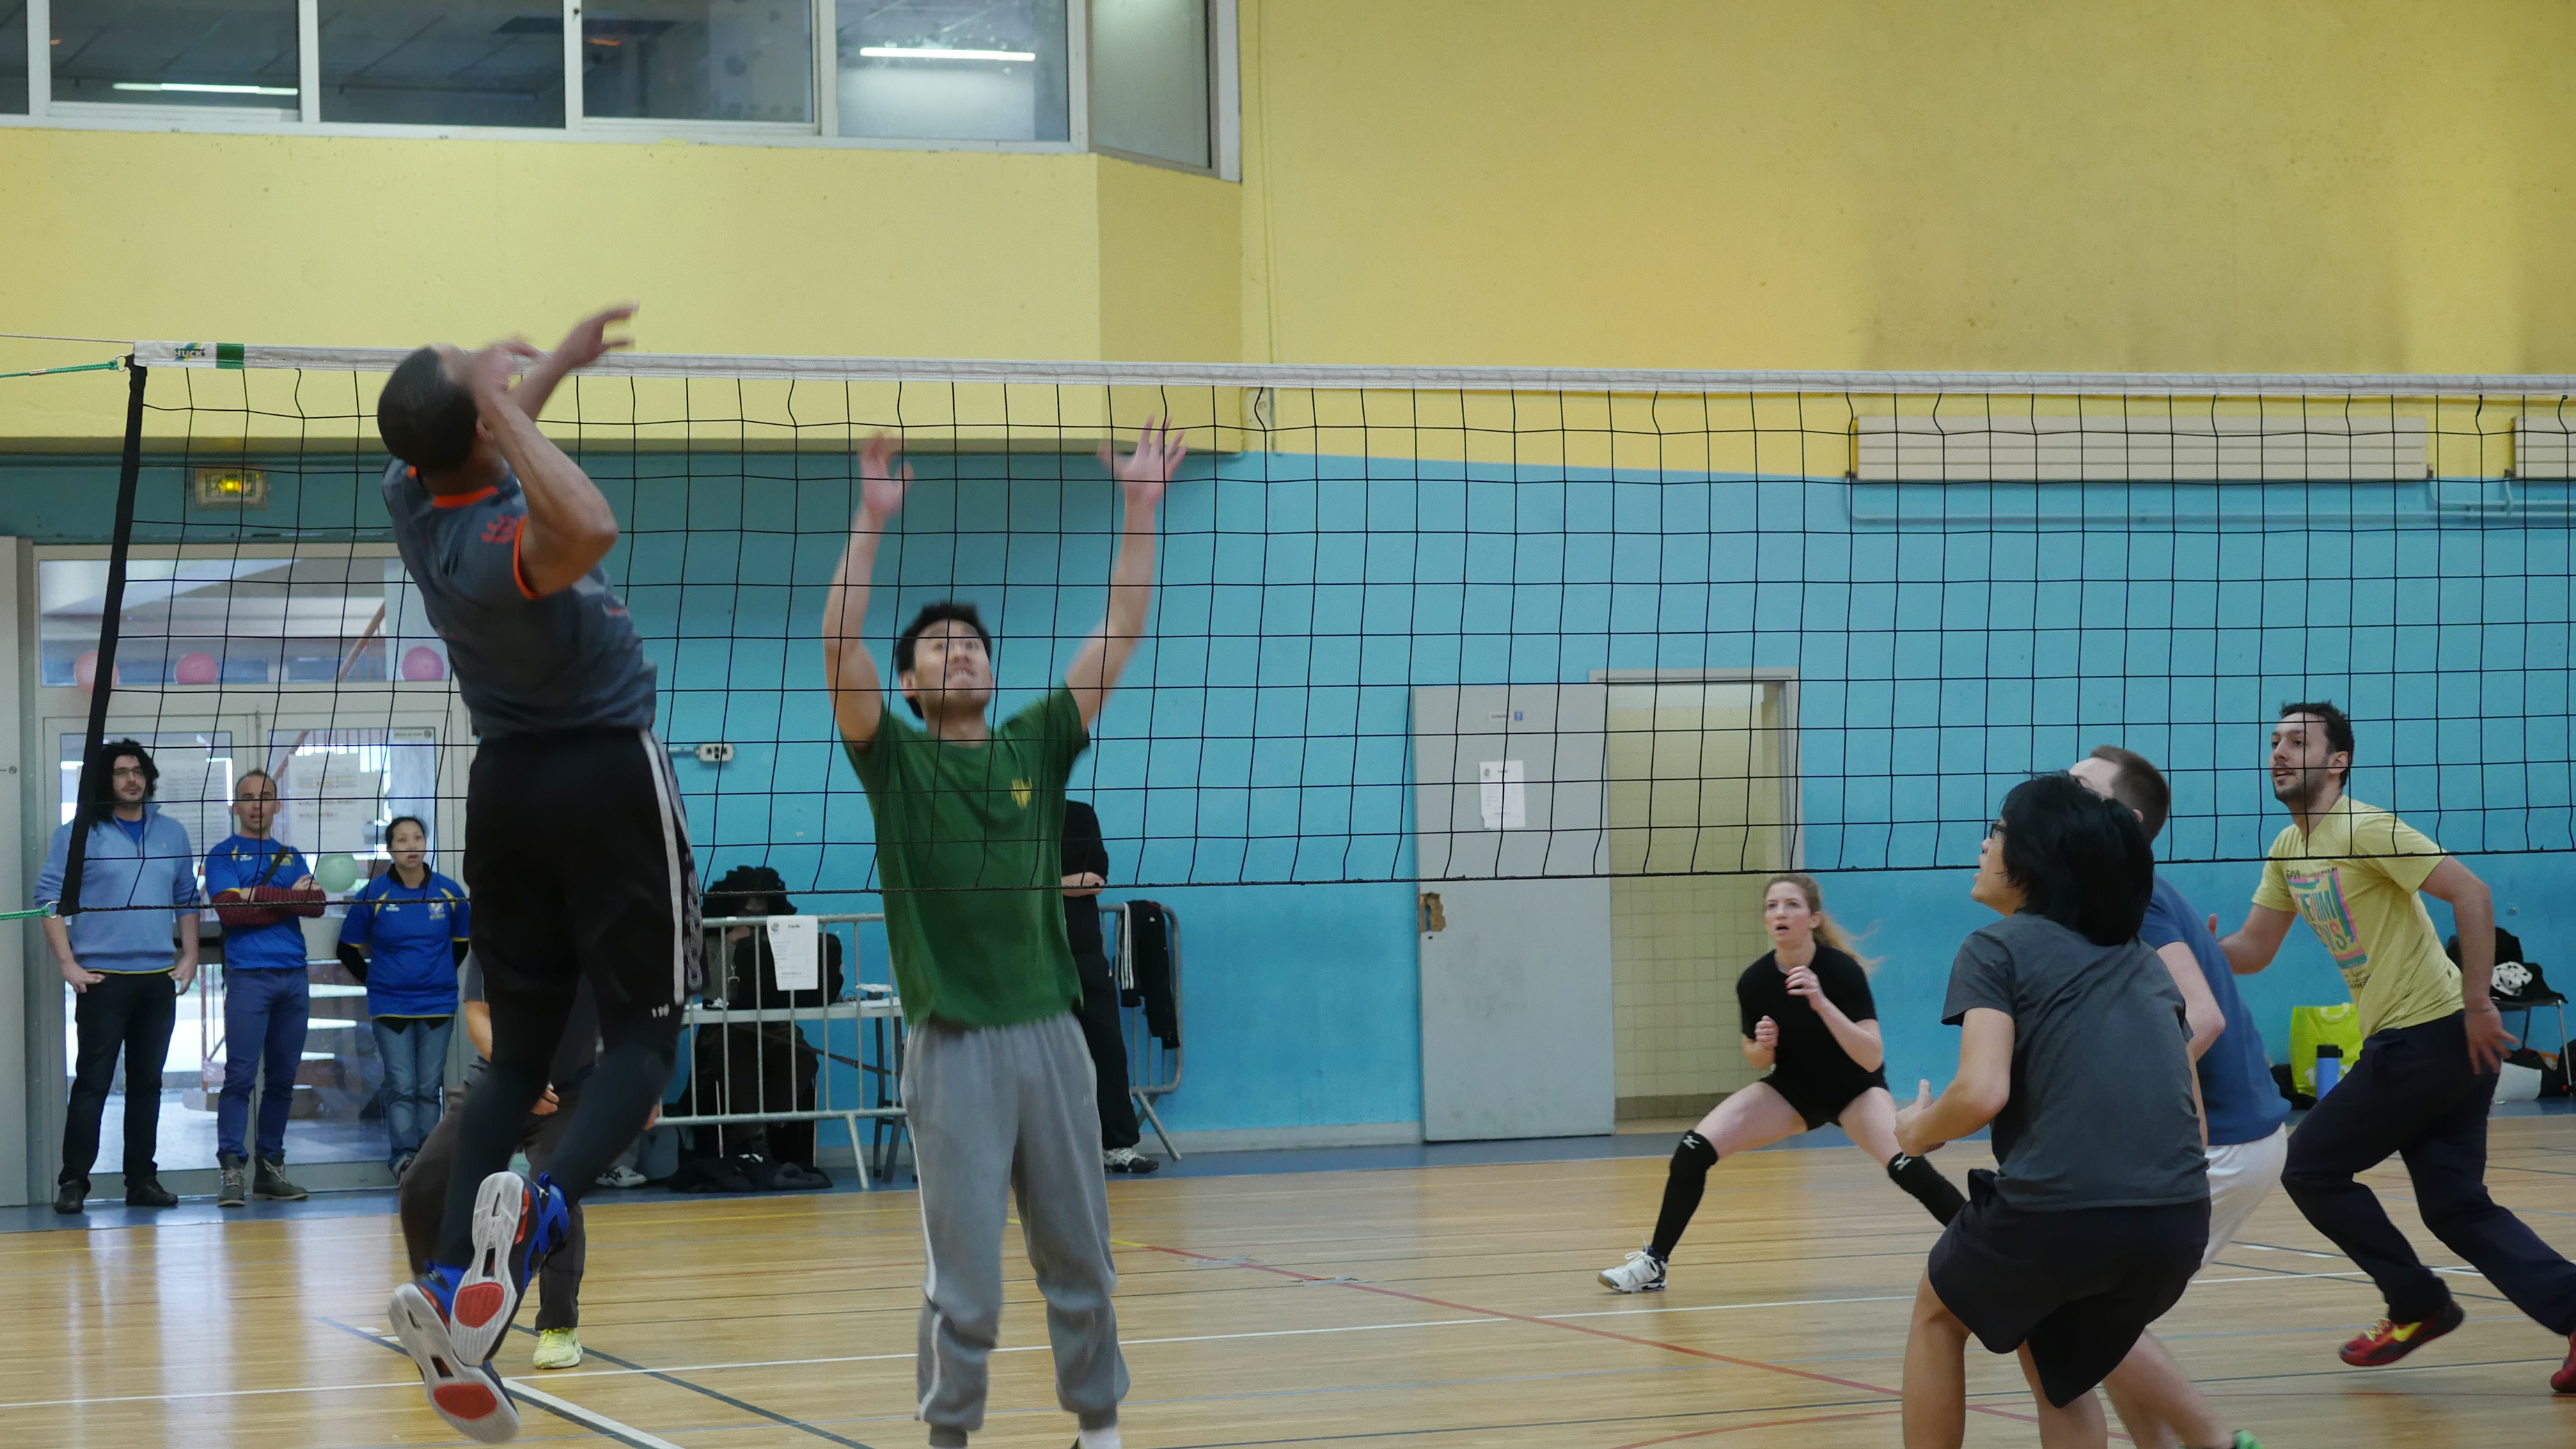 Tournoi Volley USMA 2015-52.jpg